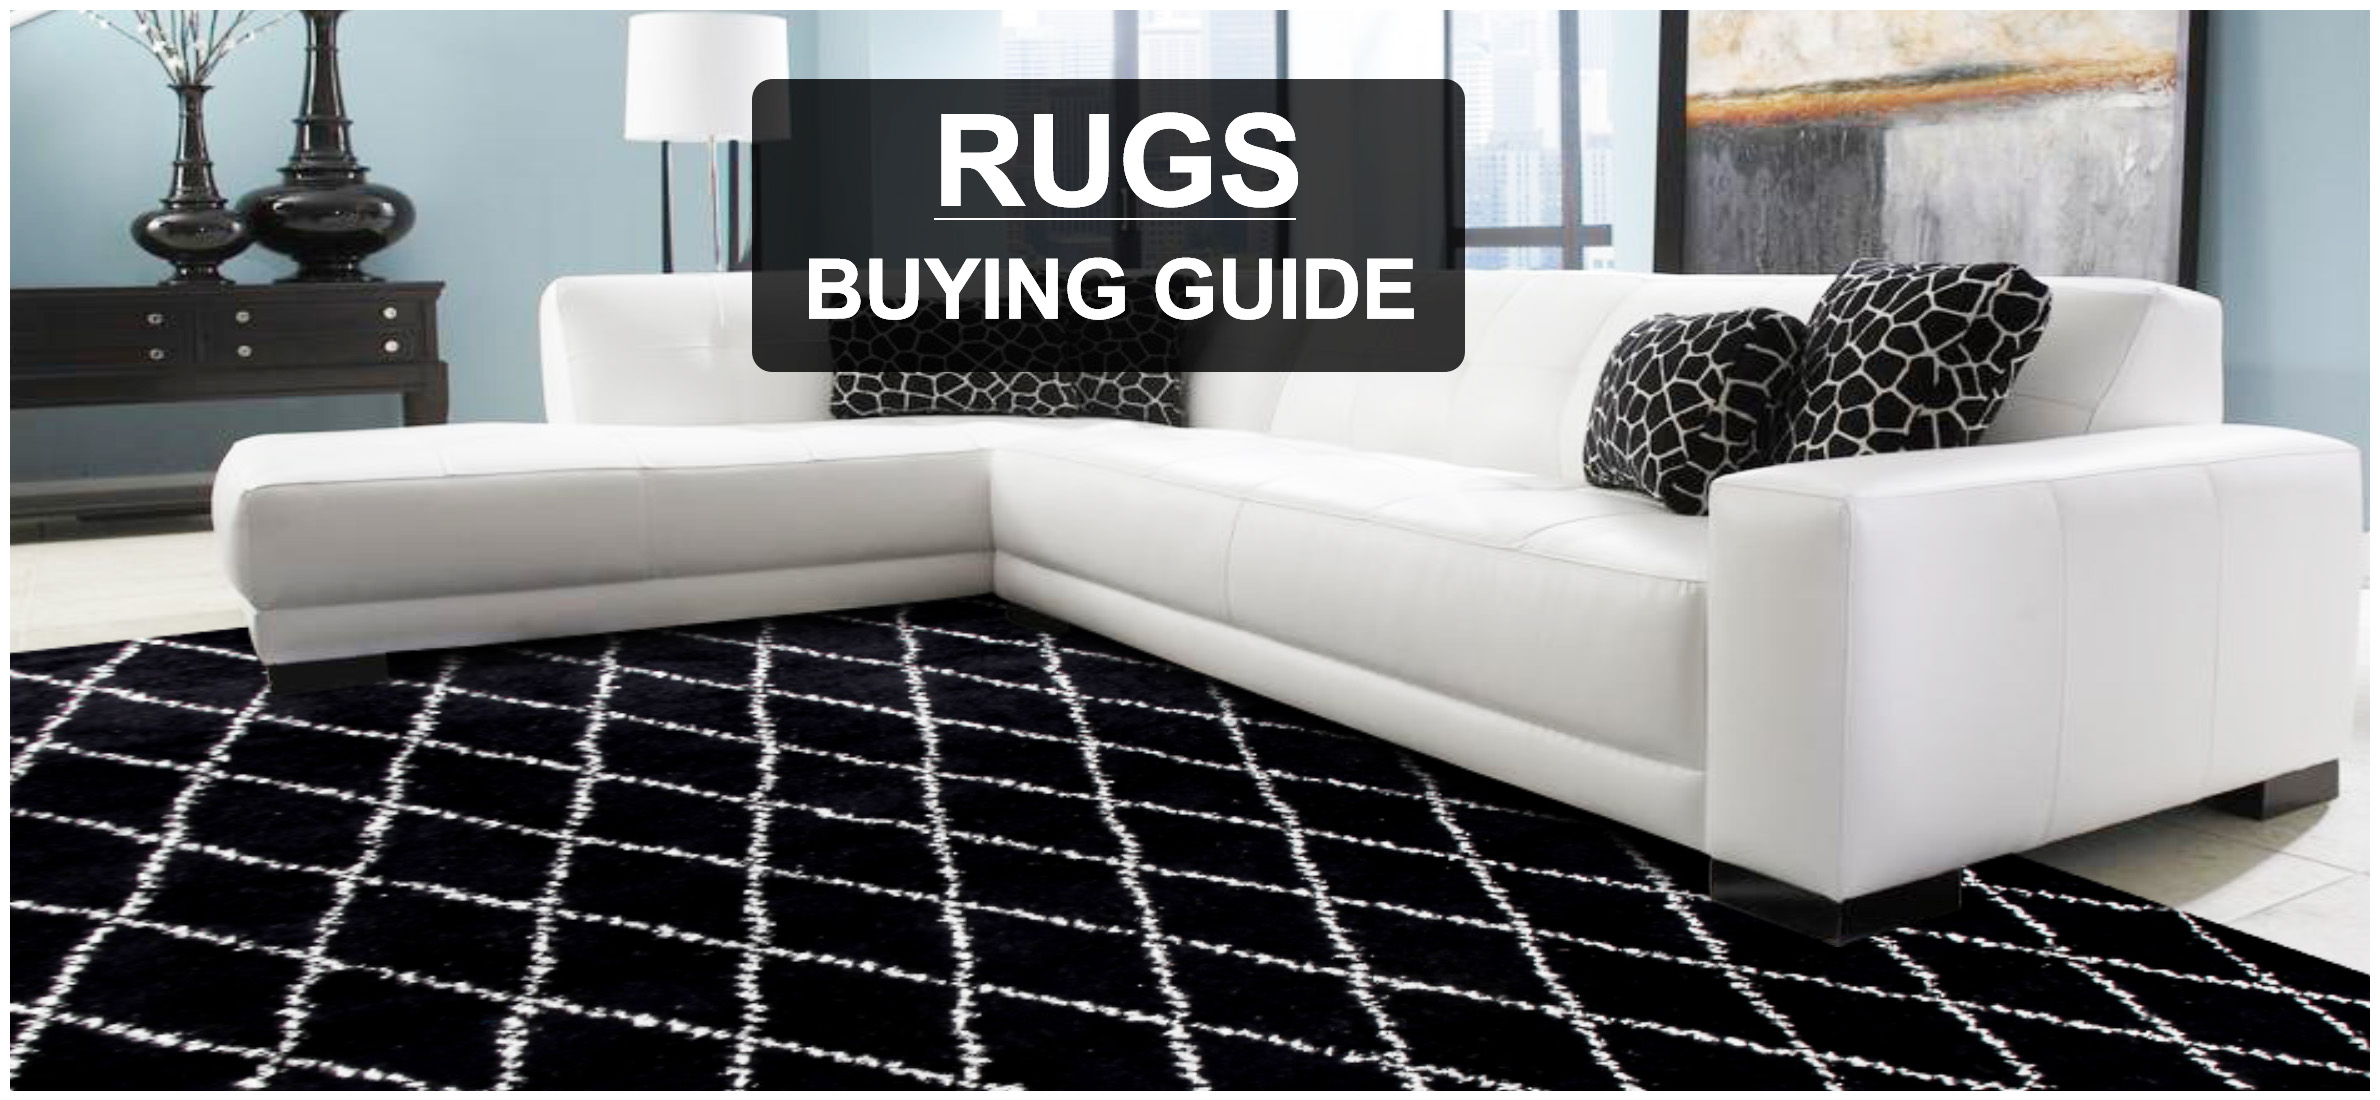 Wool Rugs Online Australia Archives